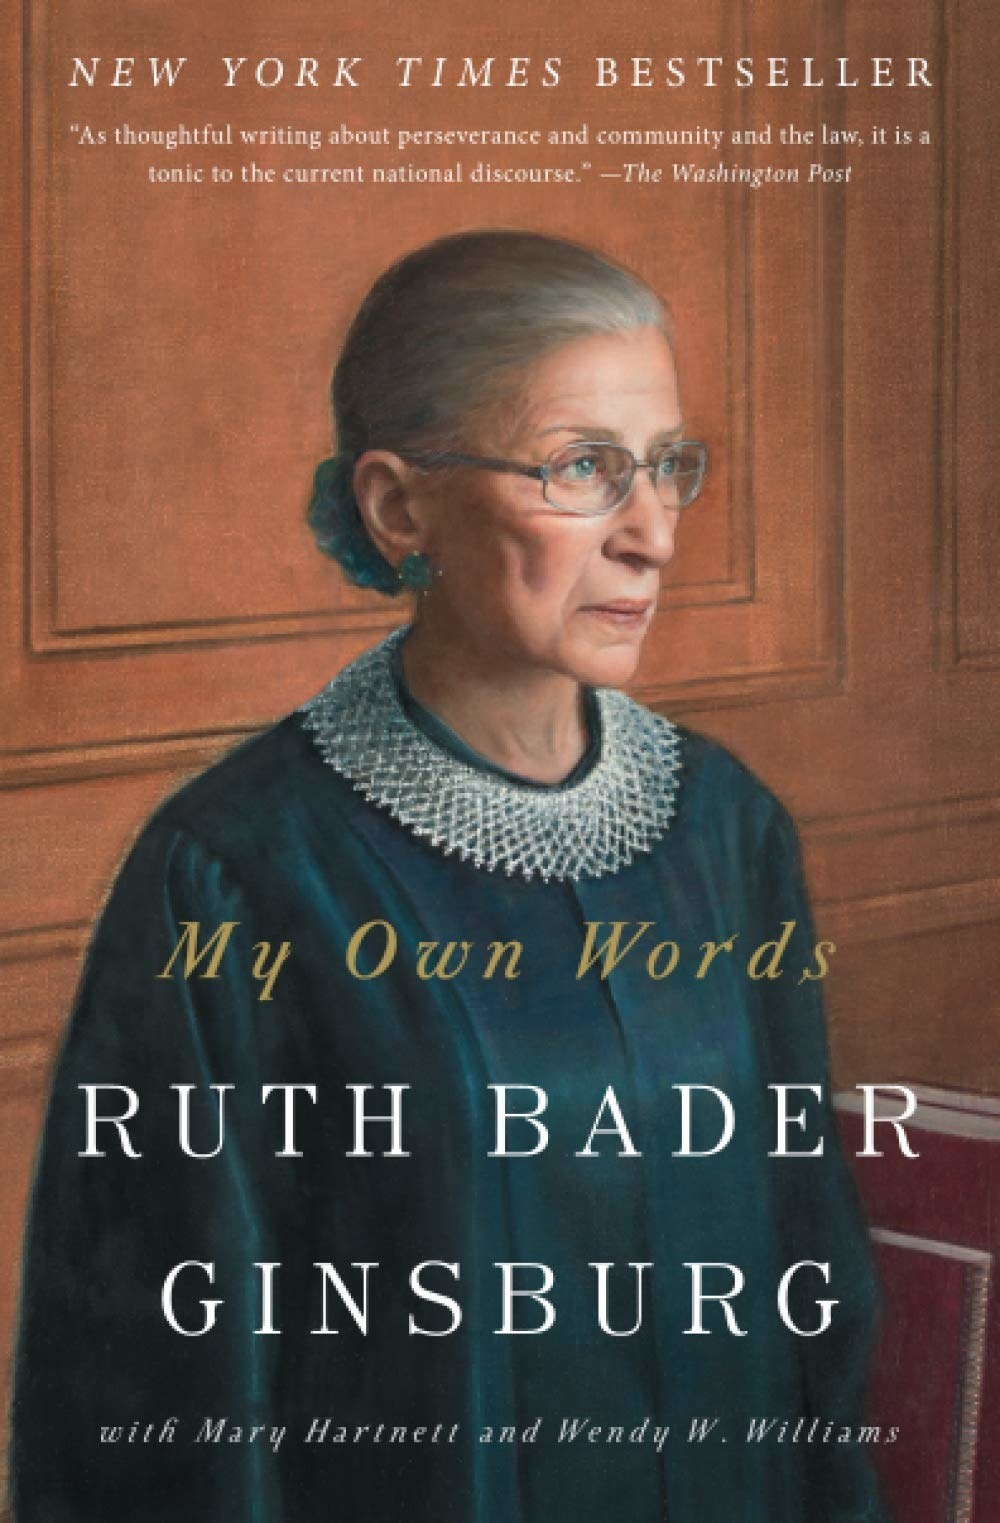 the cover of My Own Words which has a painting of Ruth Bader Ginsburg